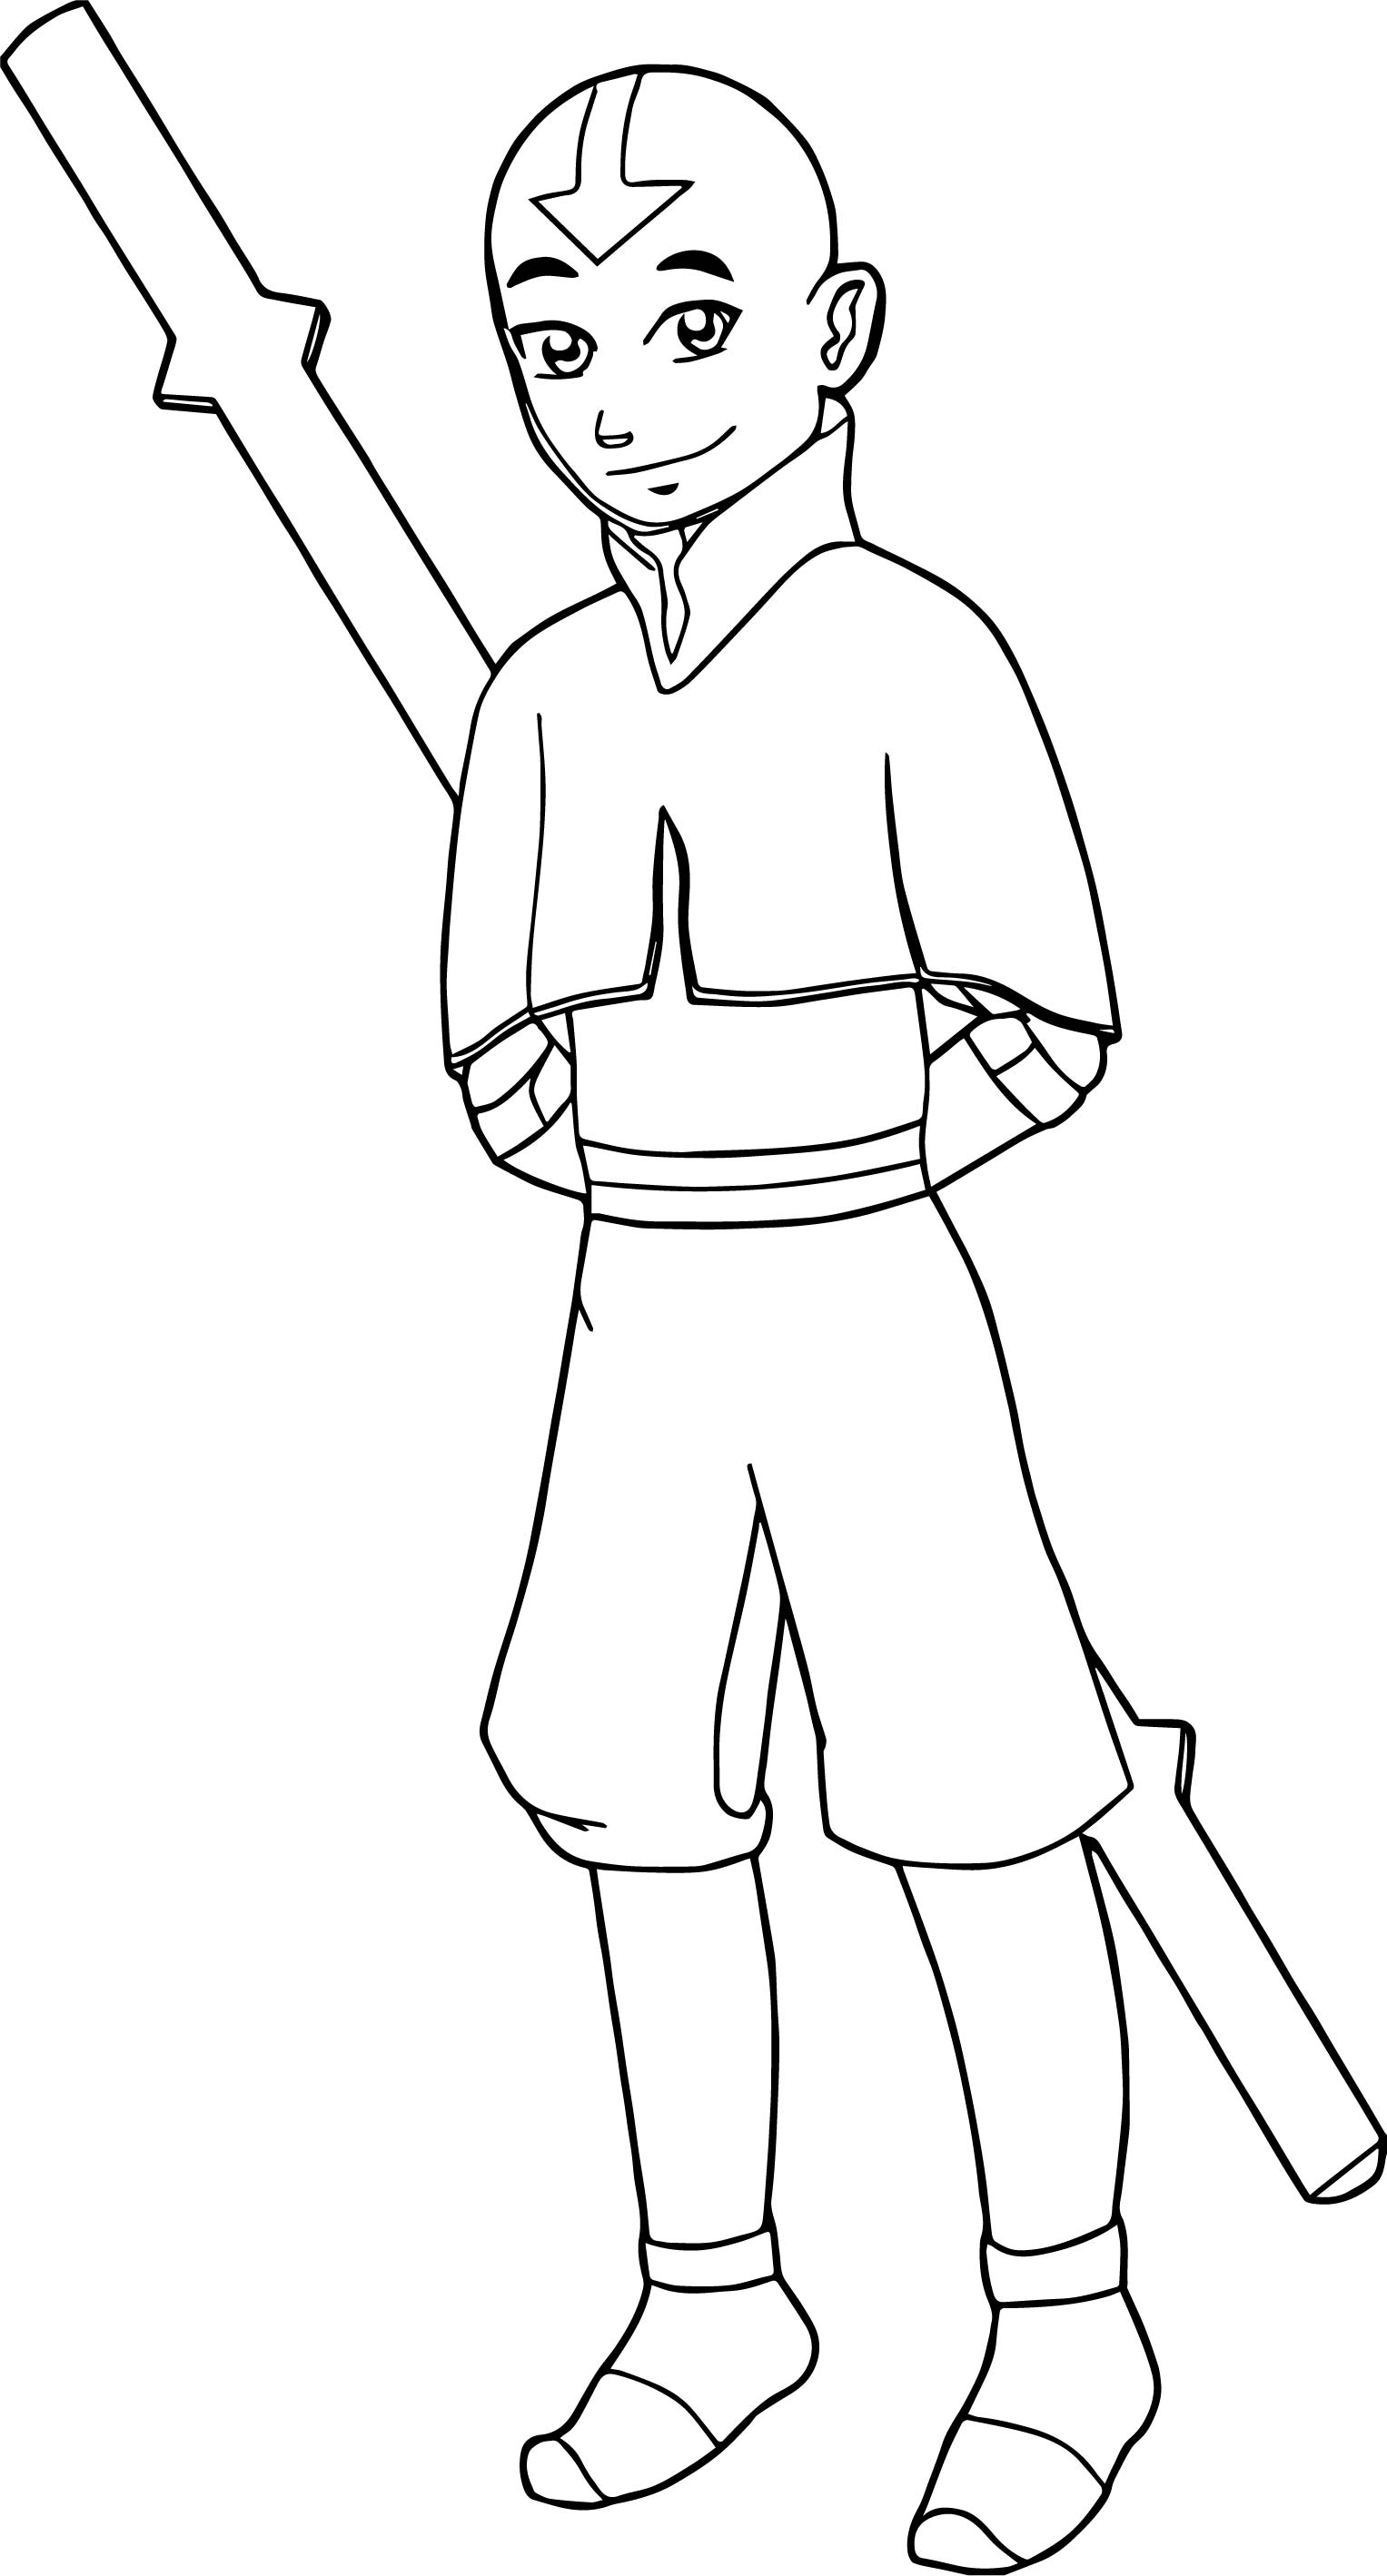 1527x2837 Drawing Of Aang Avatar Aang Coloring Page Wecoloringpage